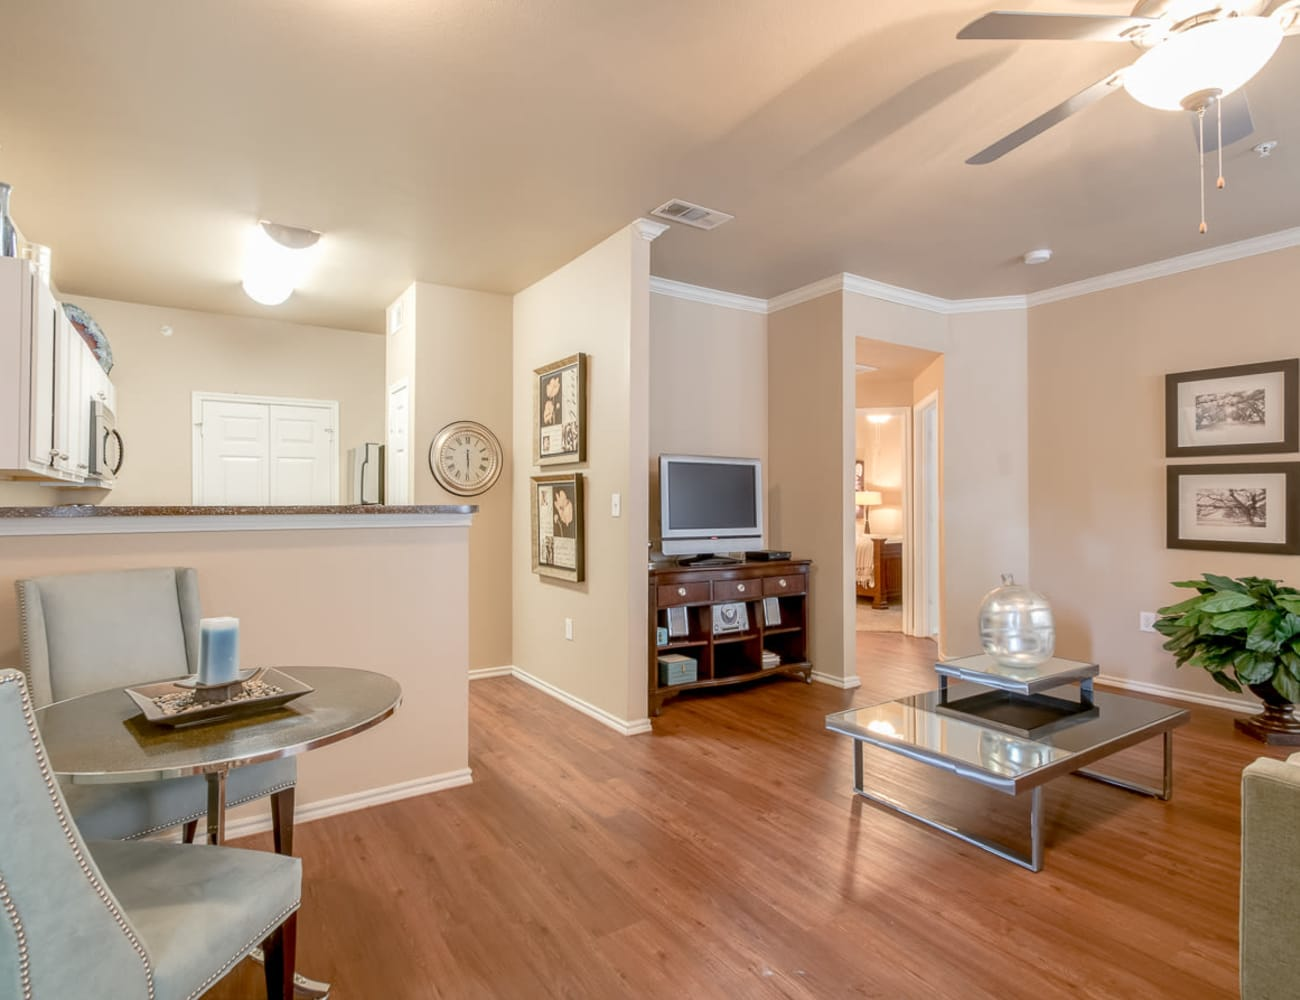 Open-concept layout with hardwood floors at Alon at Castle Hills in San Antonio, Texas